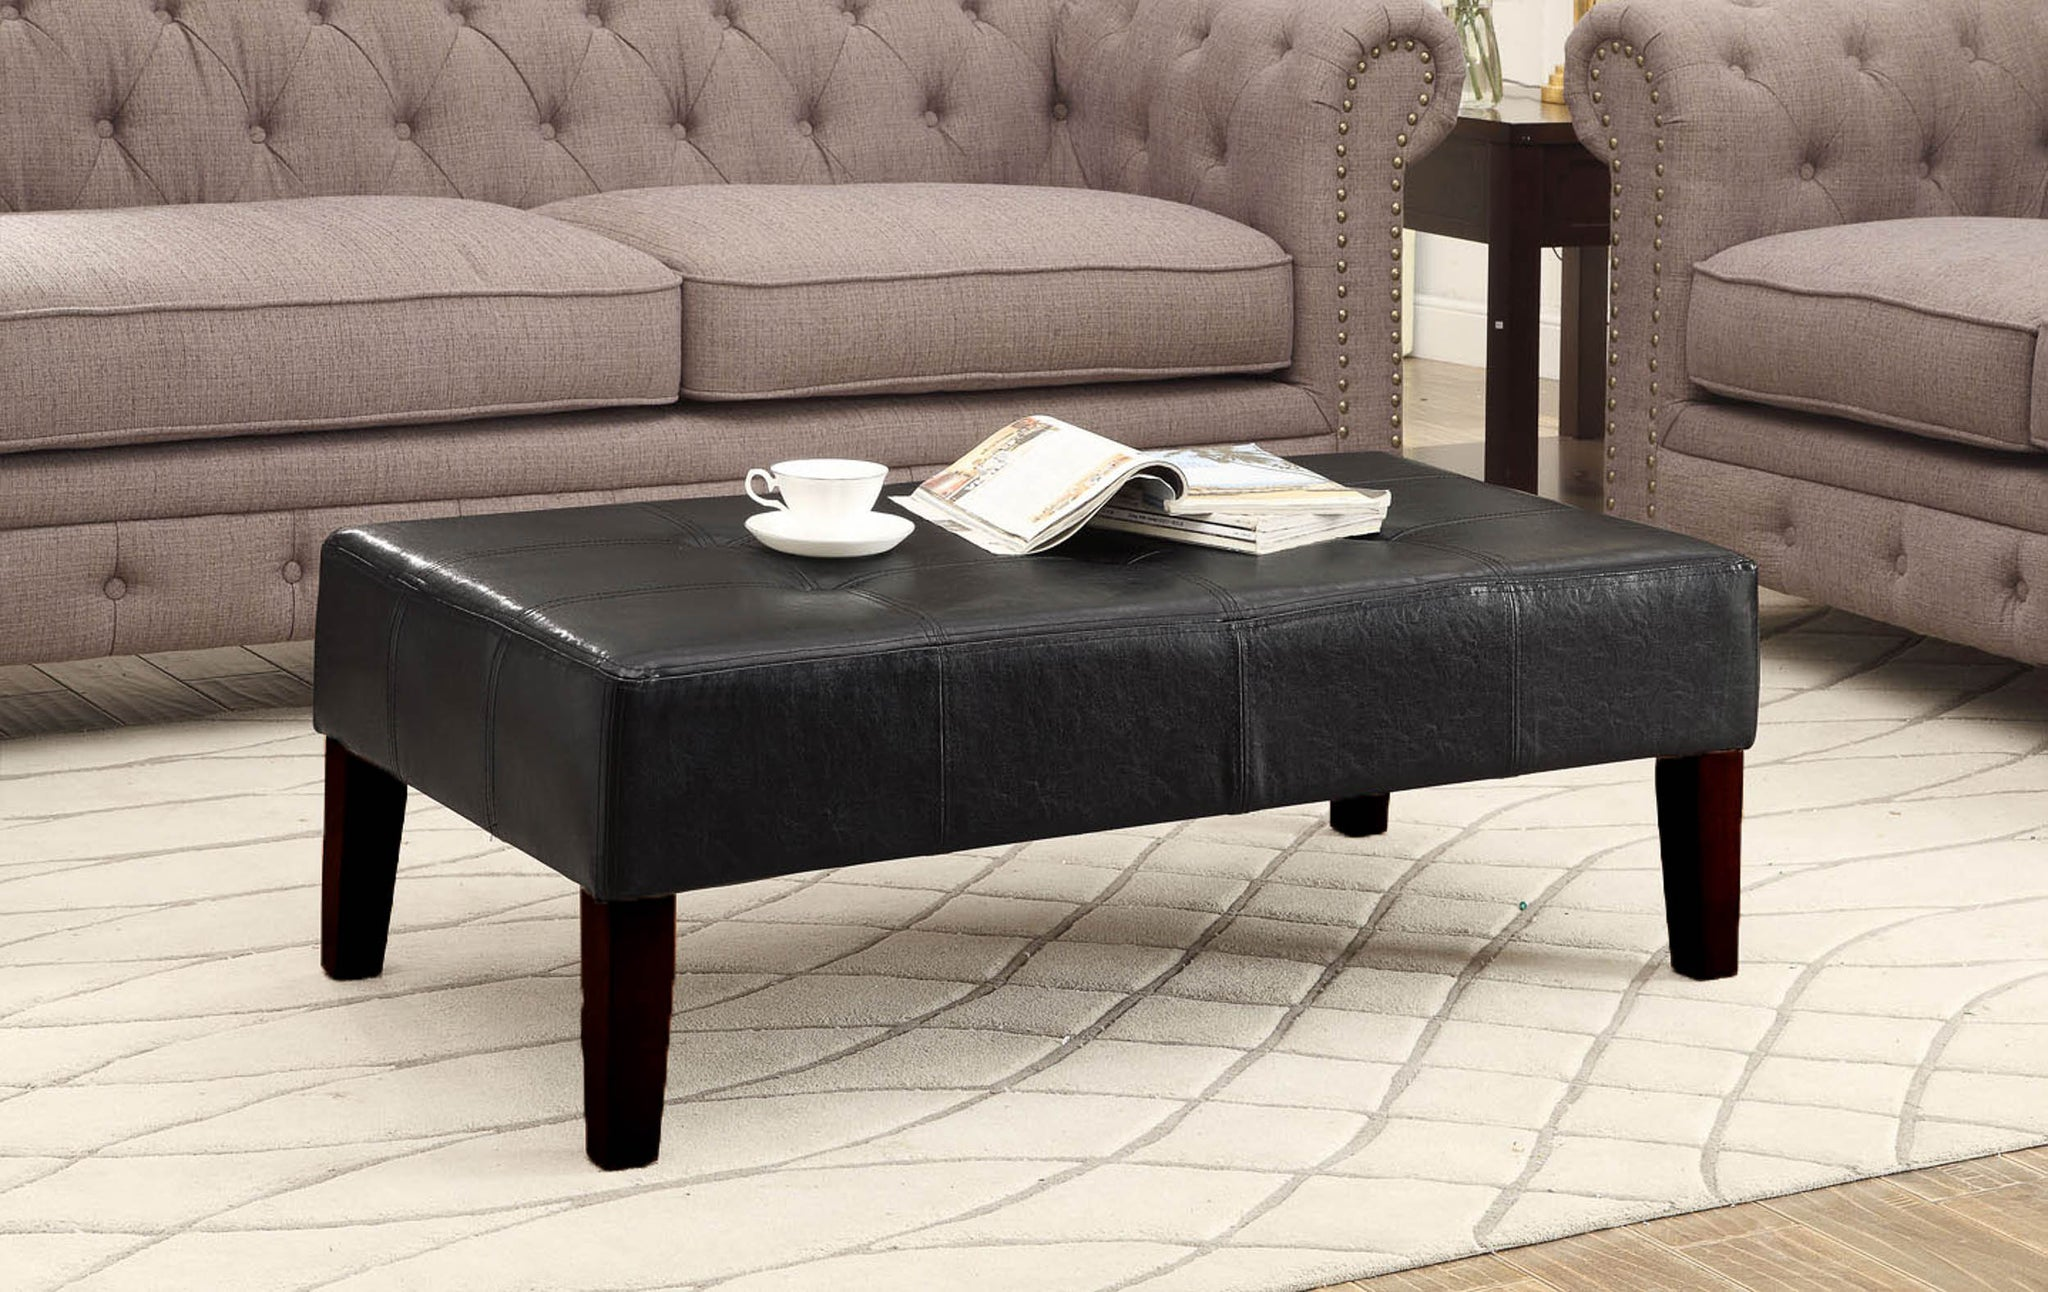 sqtlct living coffee fno mecox tufted ottoman table square shop ottomans leather